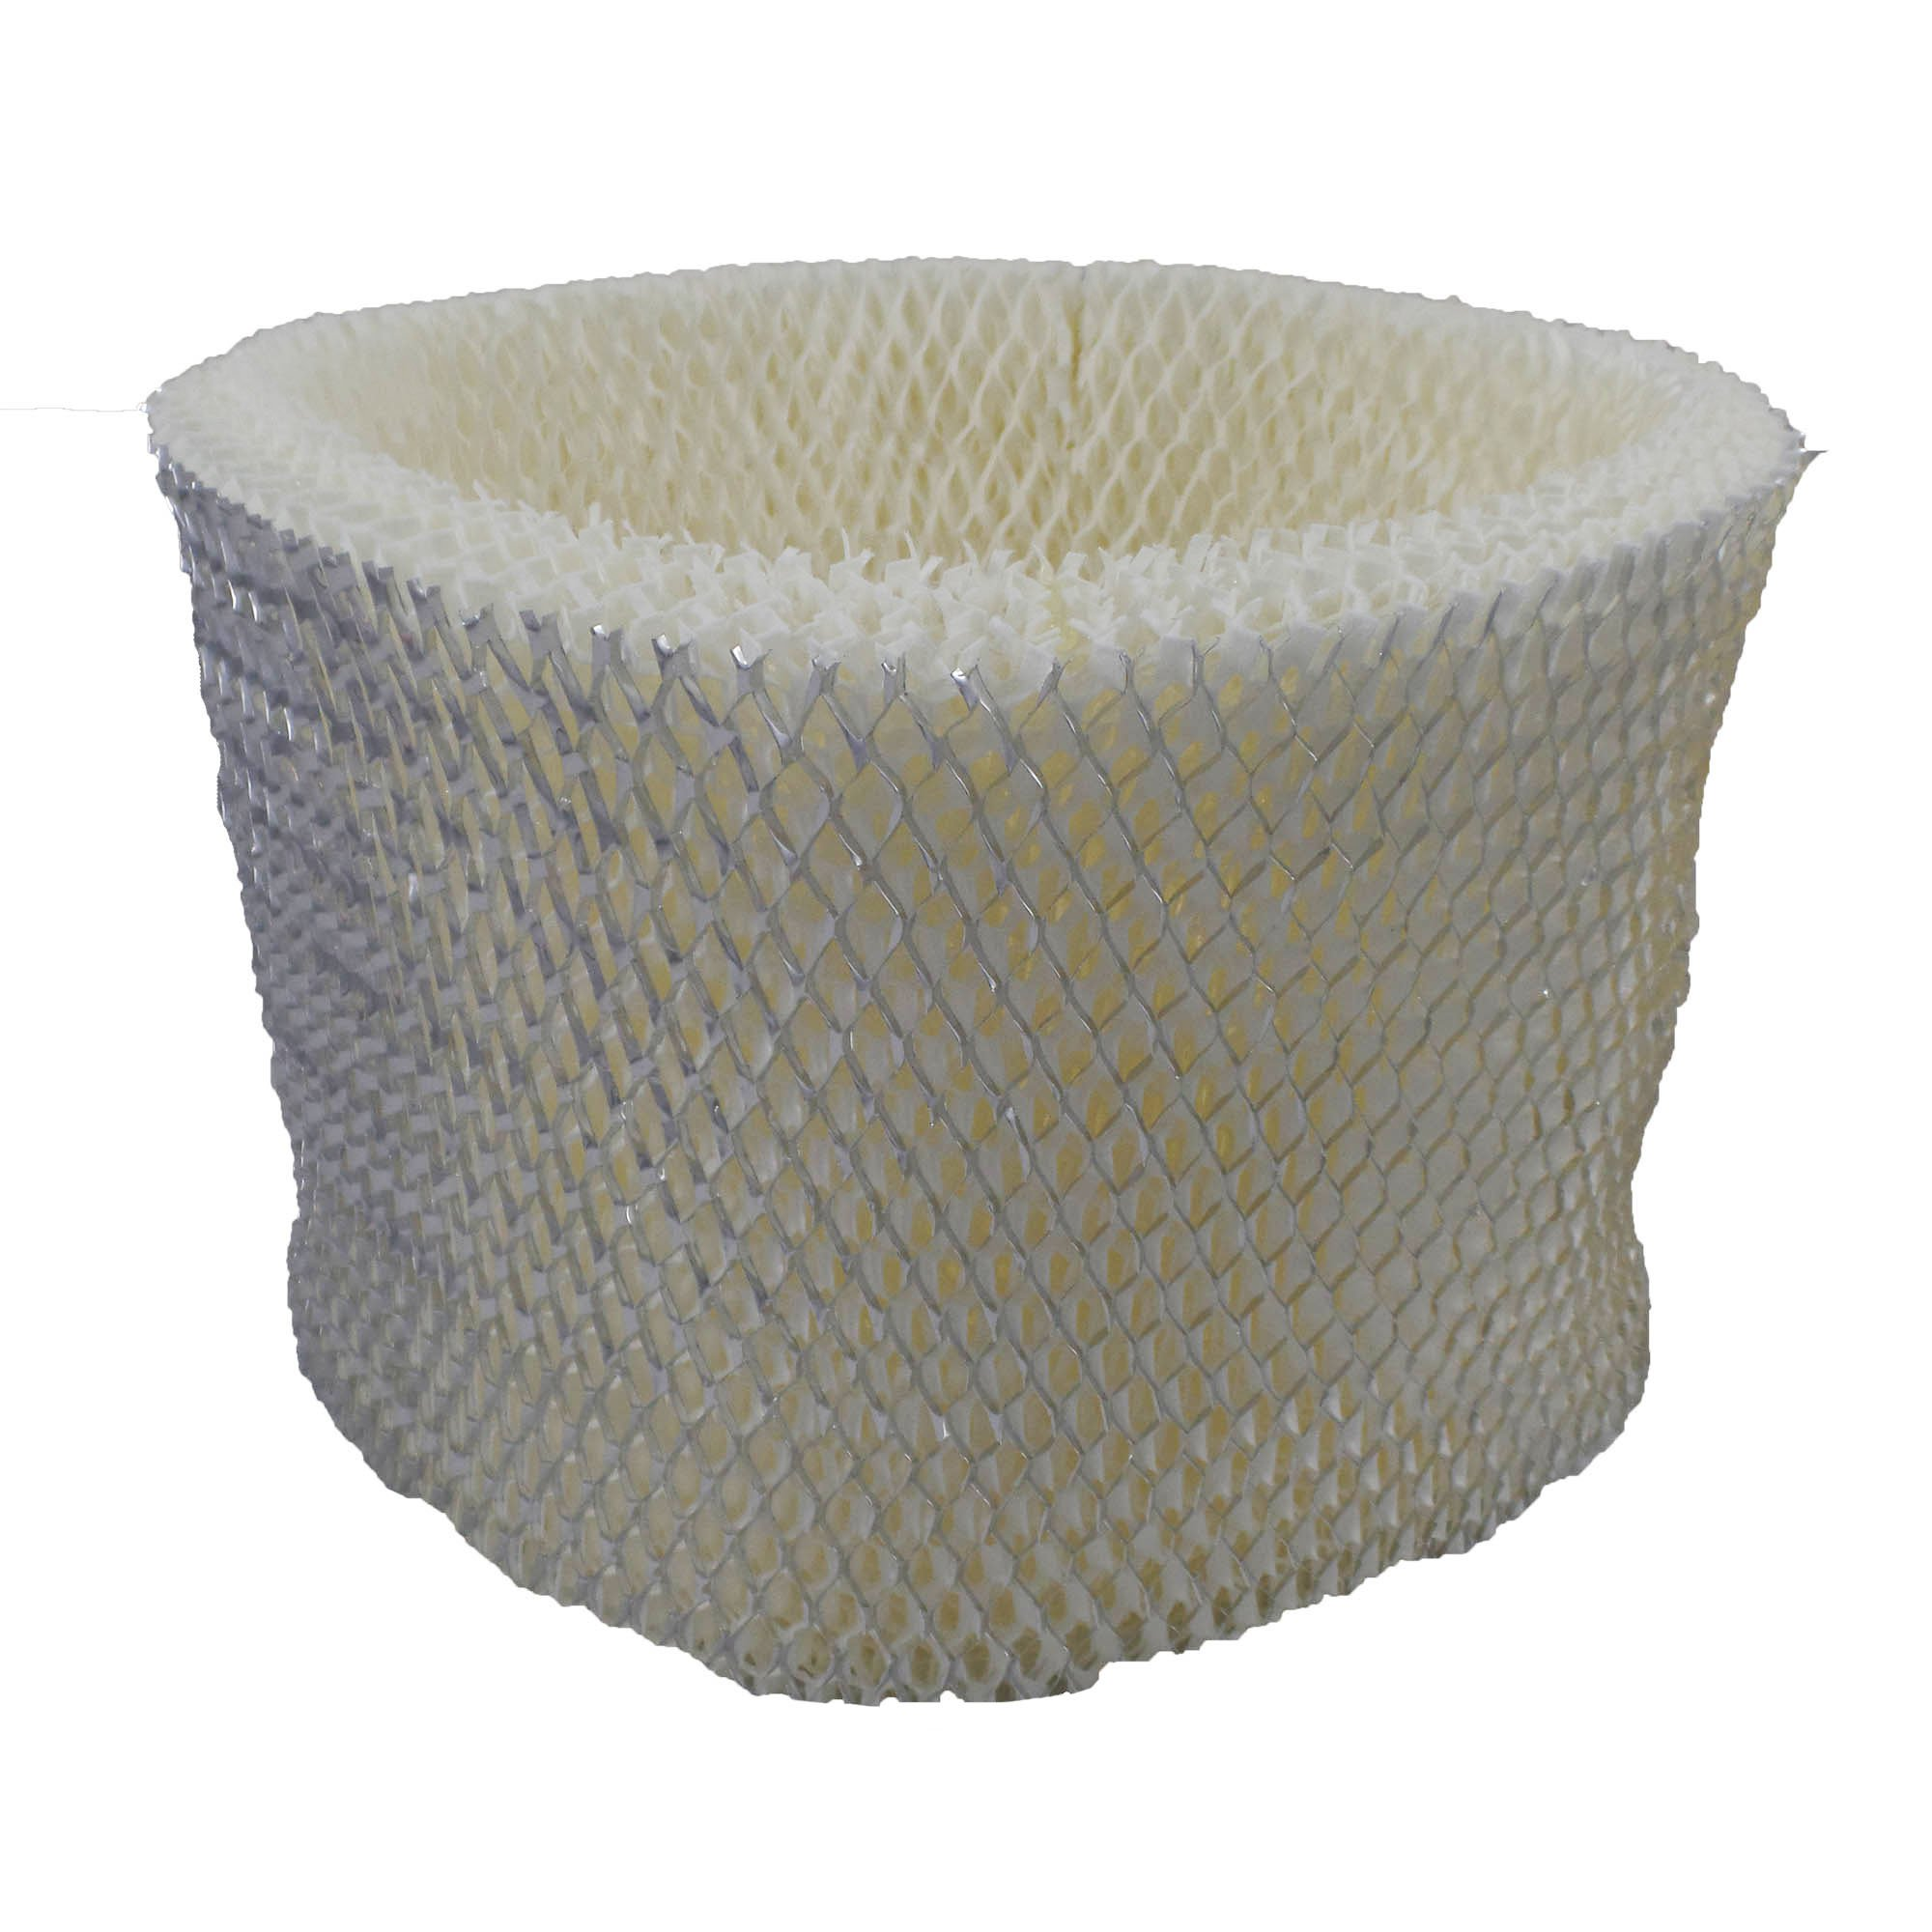 Air Filter Factory Compatible Replacement For Sunbeam SF221, SF-221 Humidifier Filter